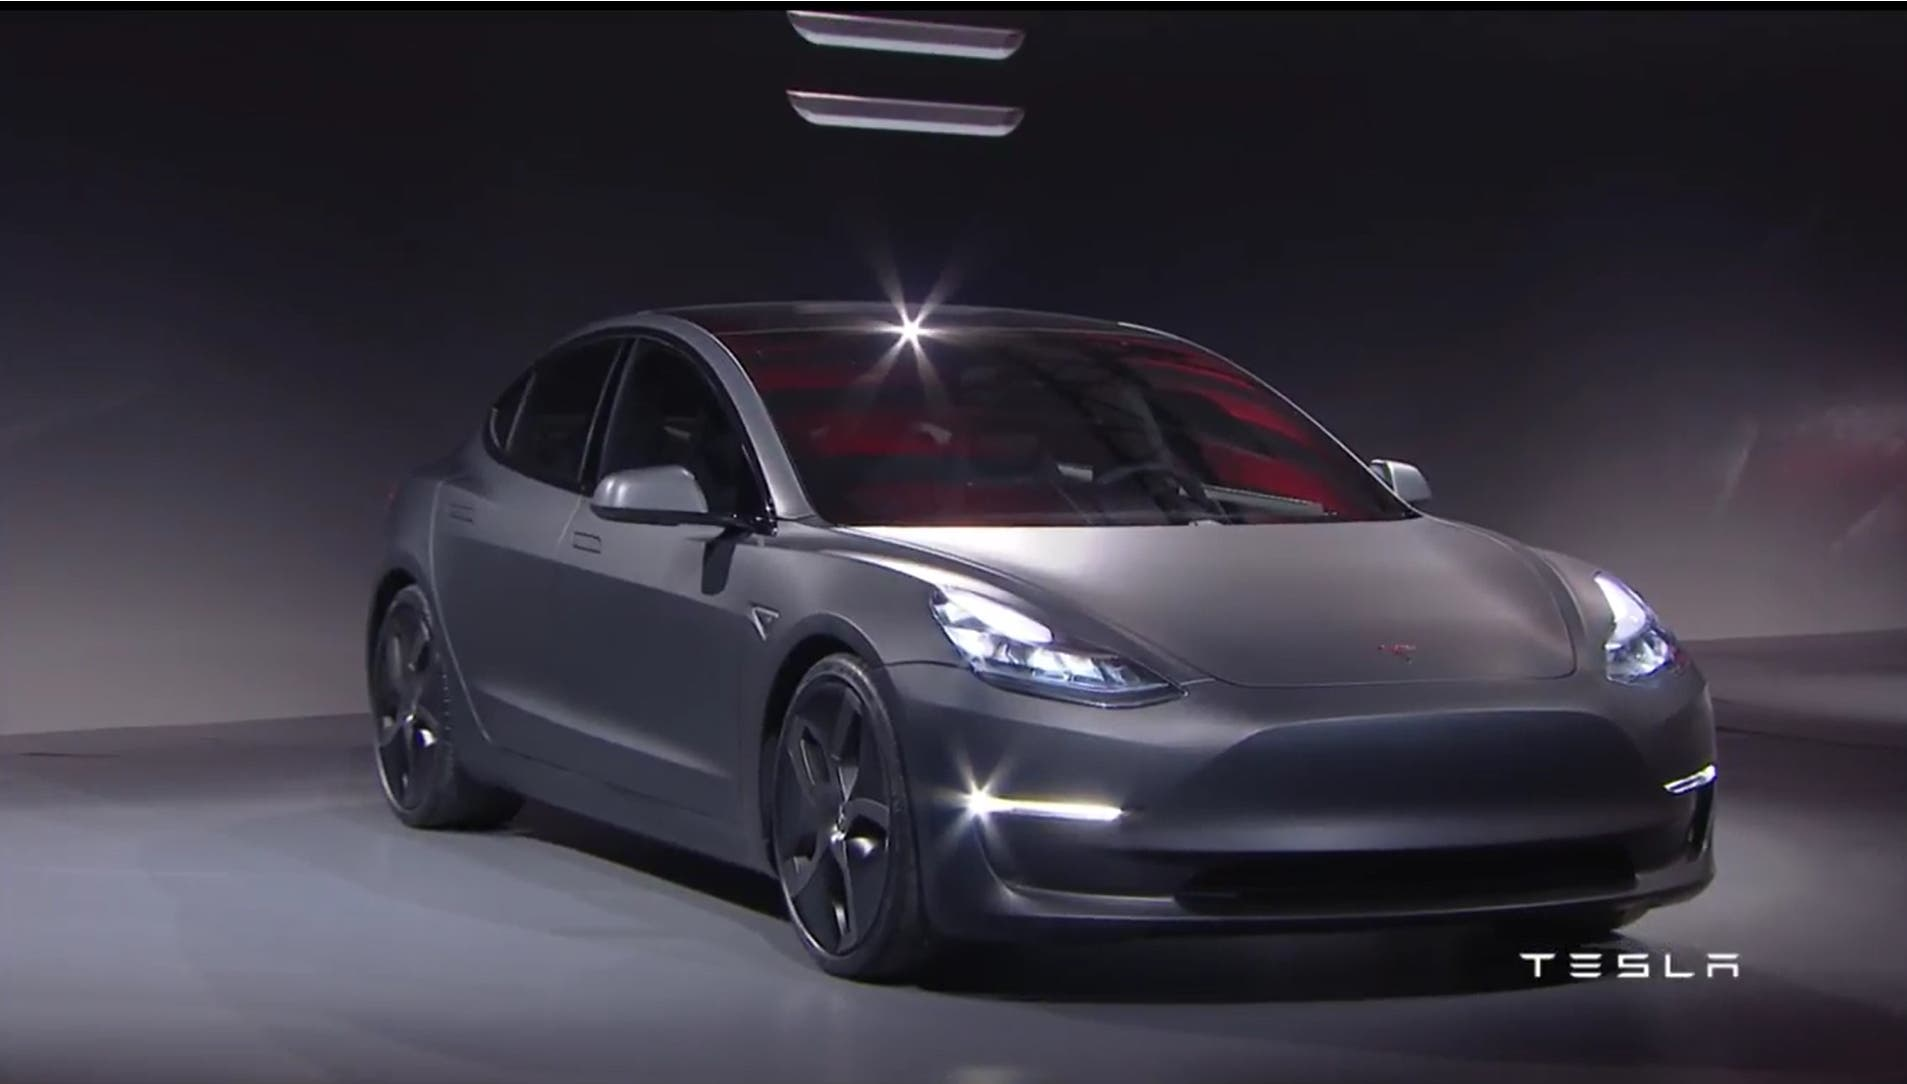 tesla model 3 alle daten infos supercharger kostet extra. Black Bedroom Furniture Sets. Home Design Ideas